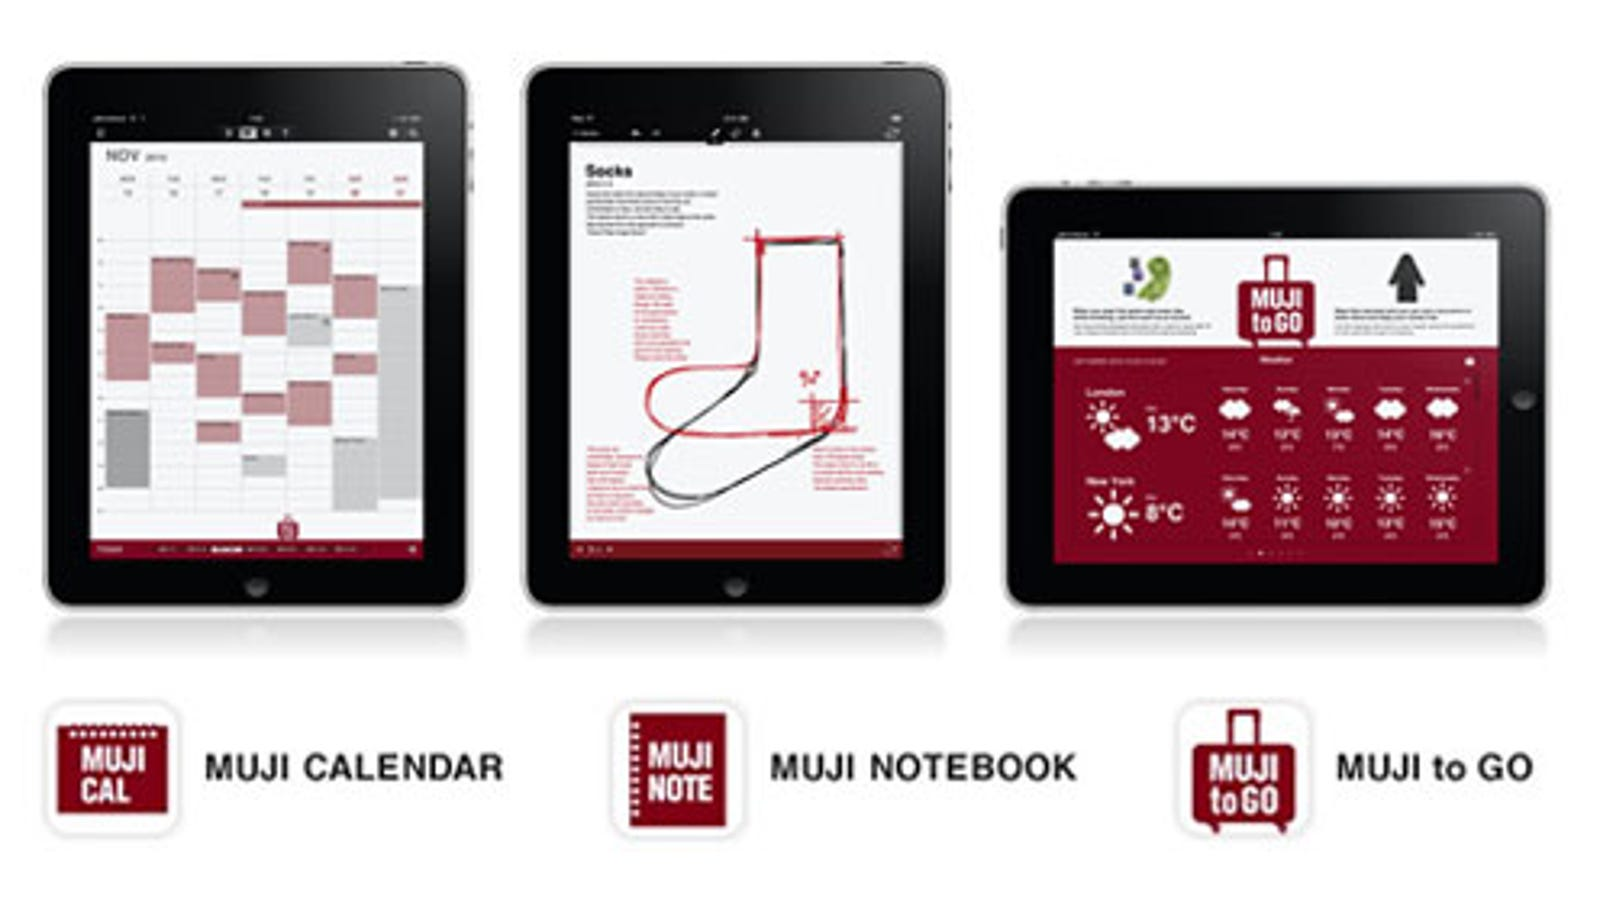 Calendar Notebook App : Muji apps provide an elegant notebook calendar and